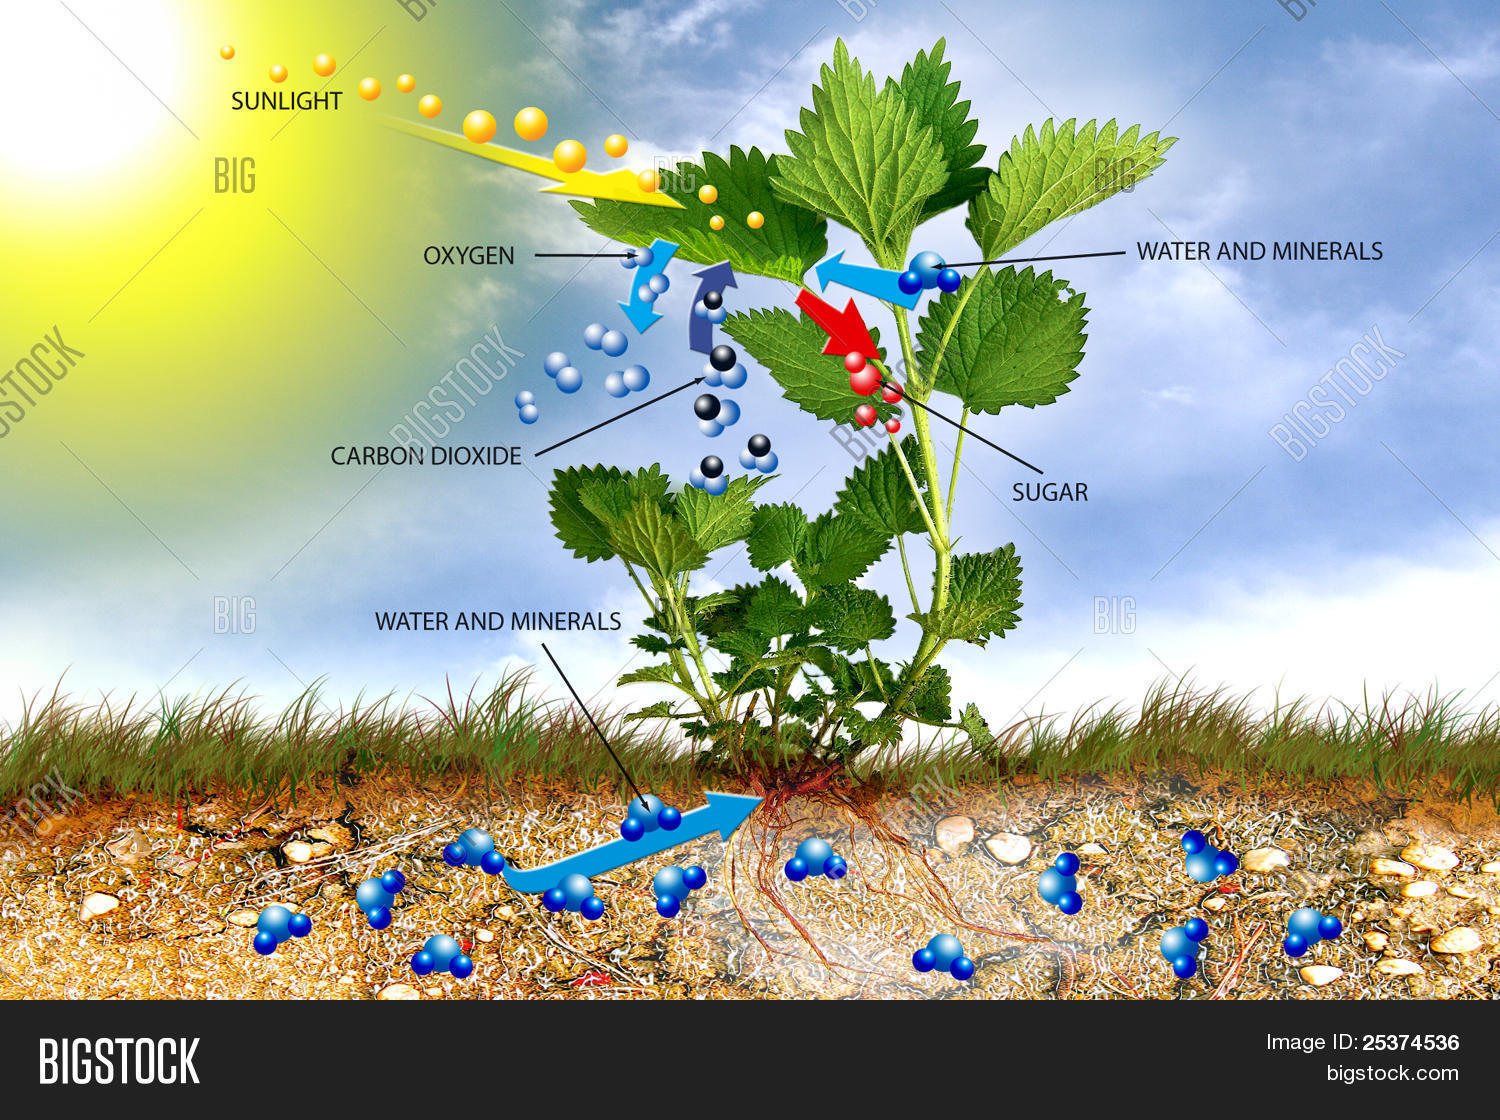 an analysis of the photosynthesis in plant life